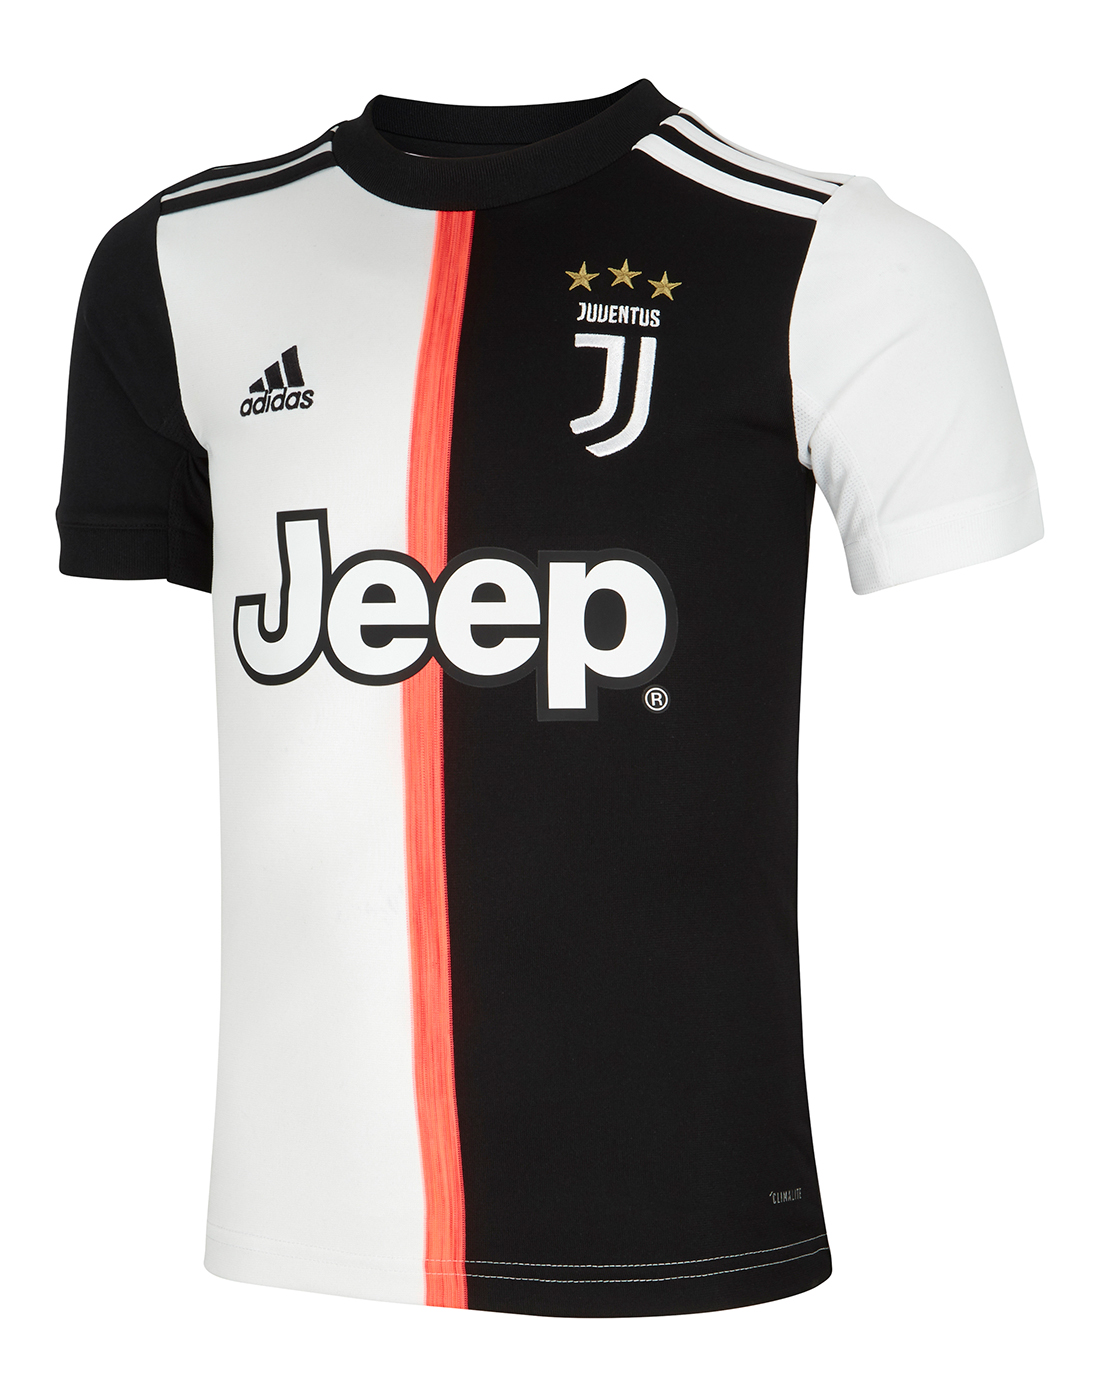 29cd485100248 Kid's Juventus 19/20 Home Jersey | Life Style Sports